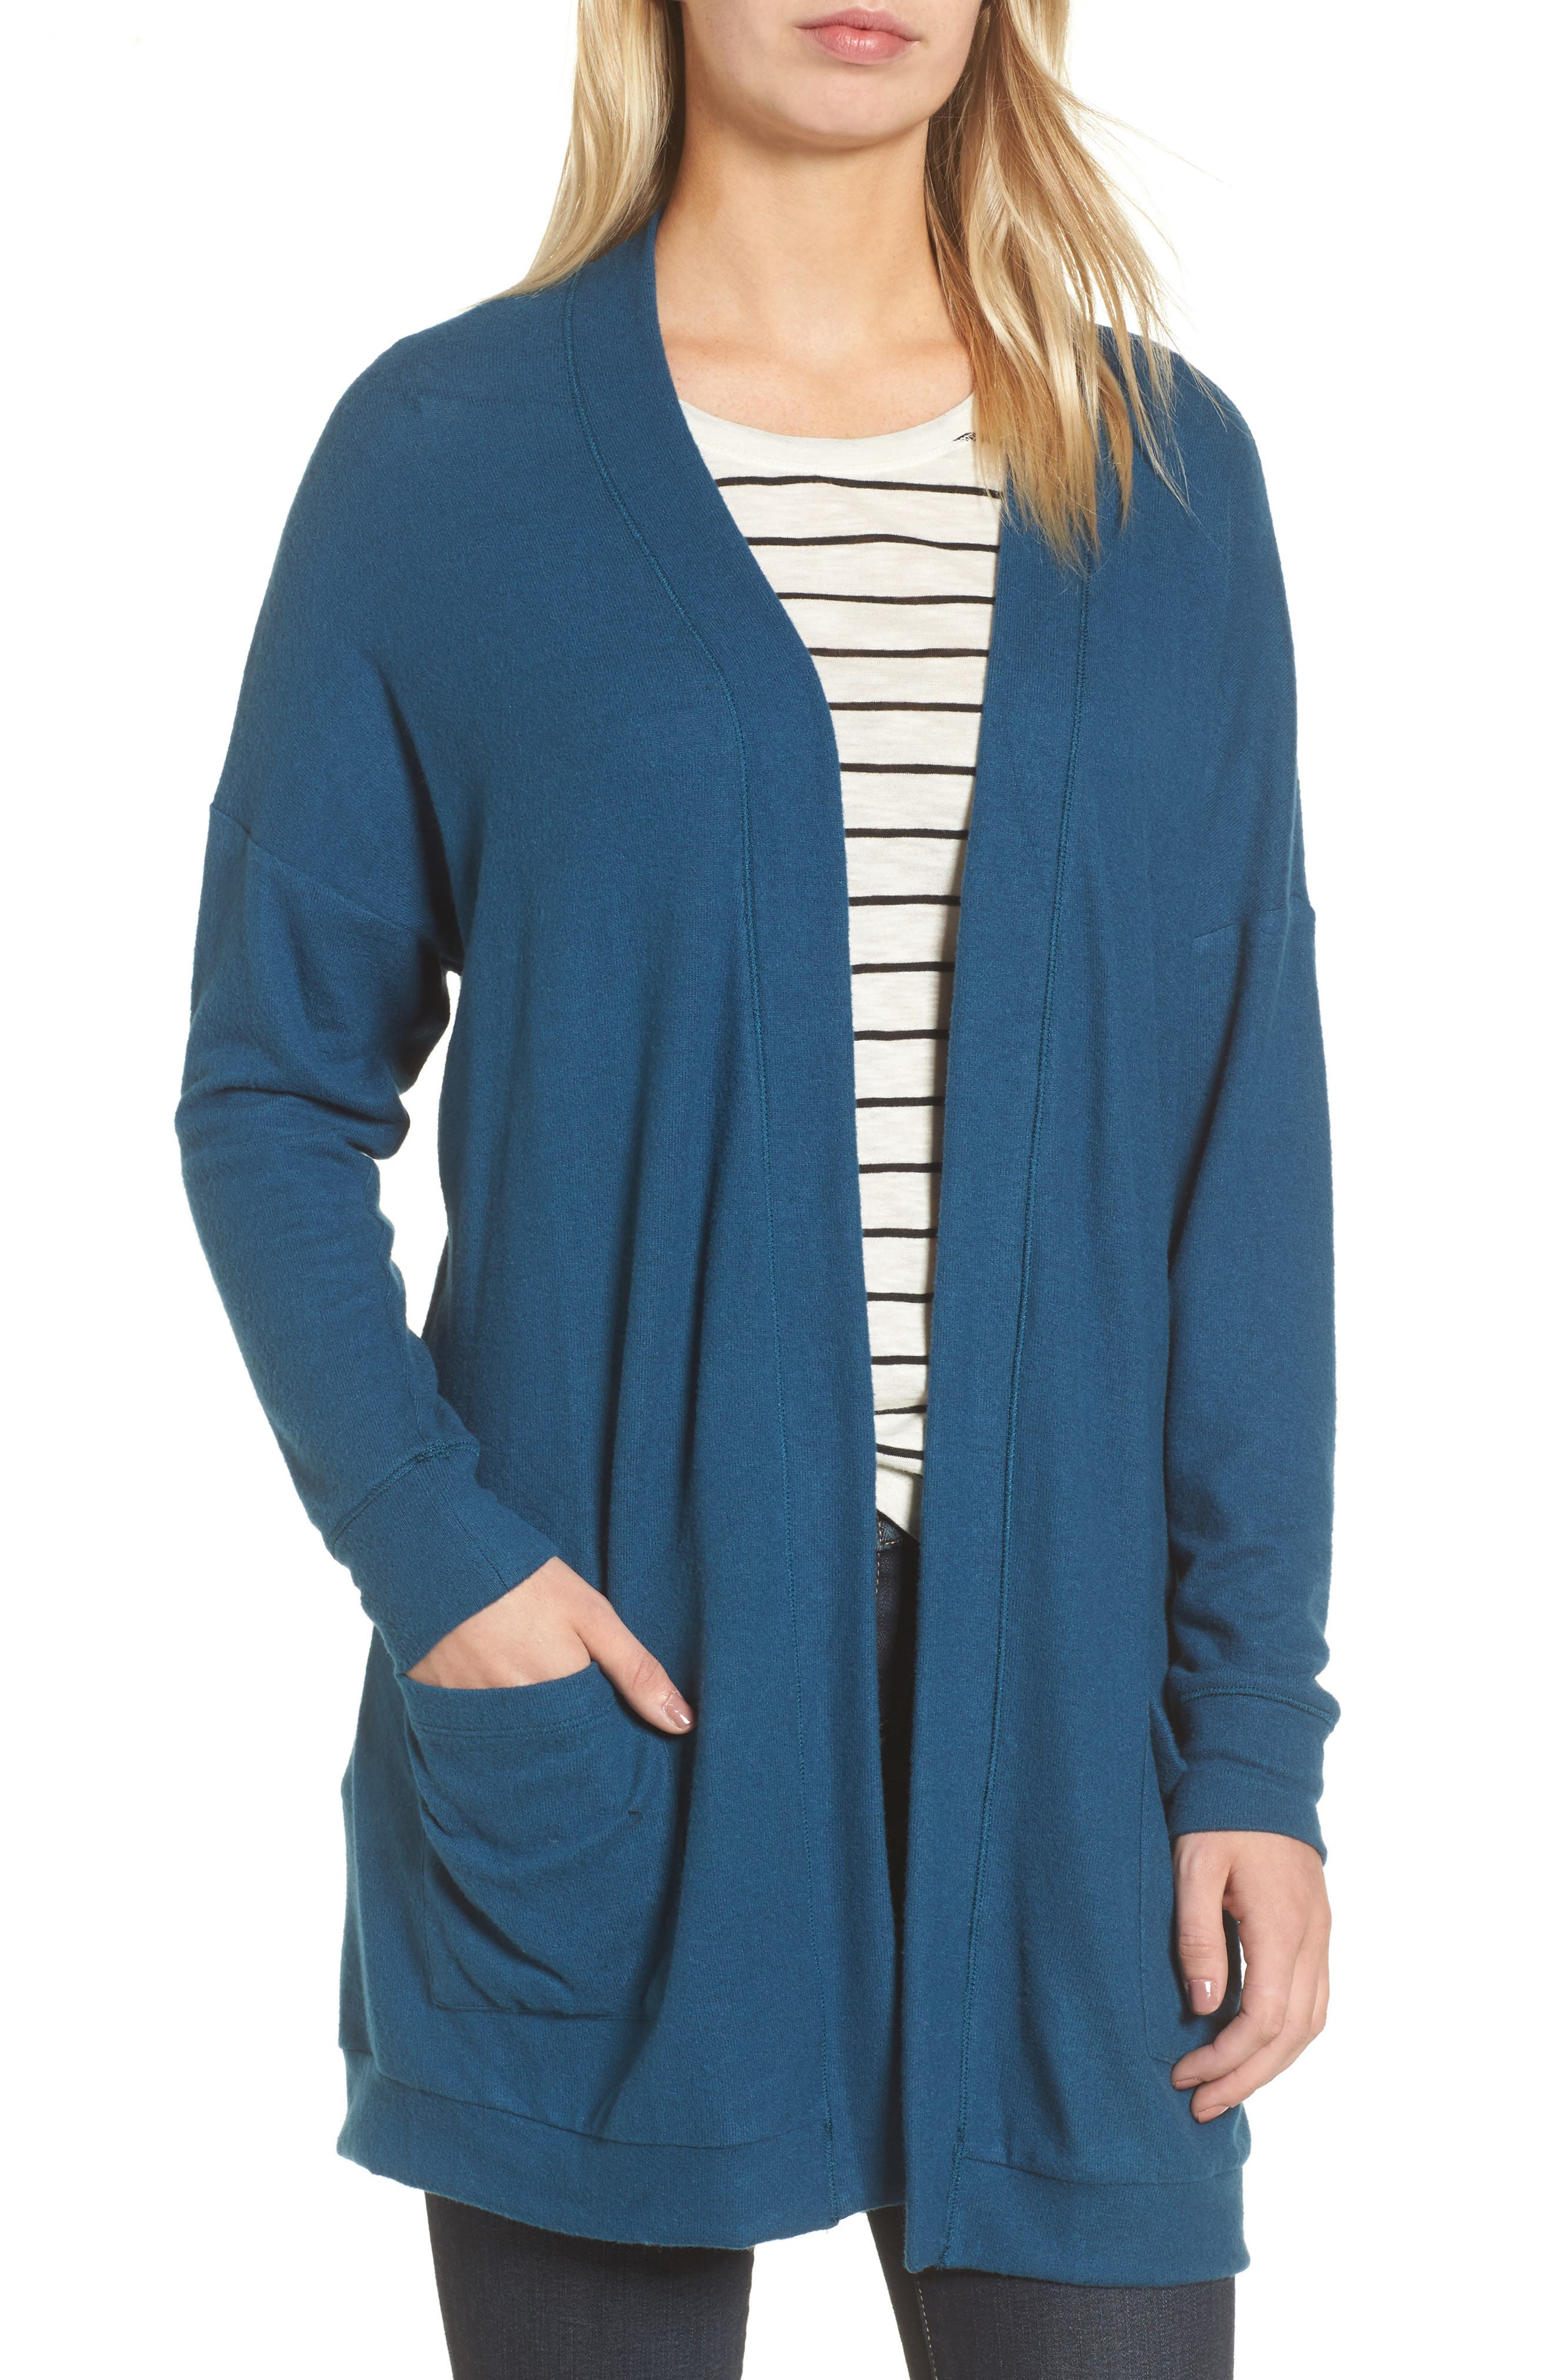 Rib Knit Cardigan,                         Main,                         color, Blue Ceramic